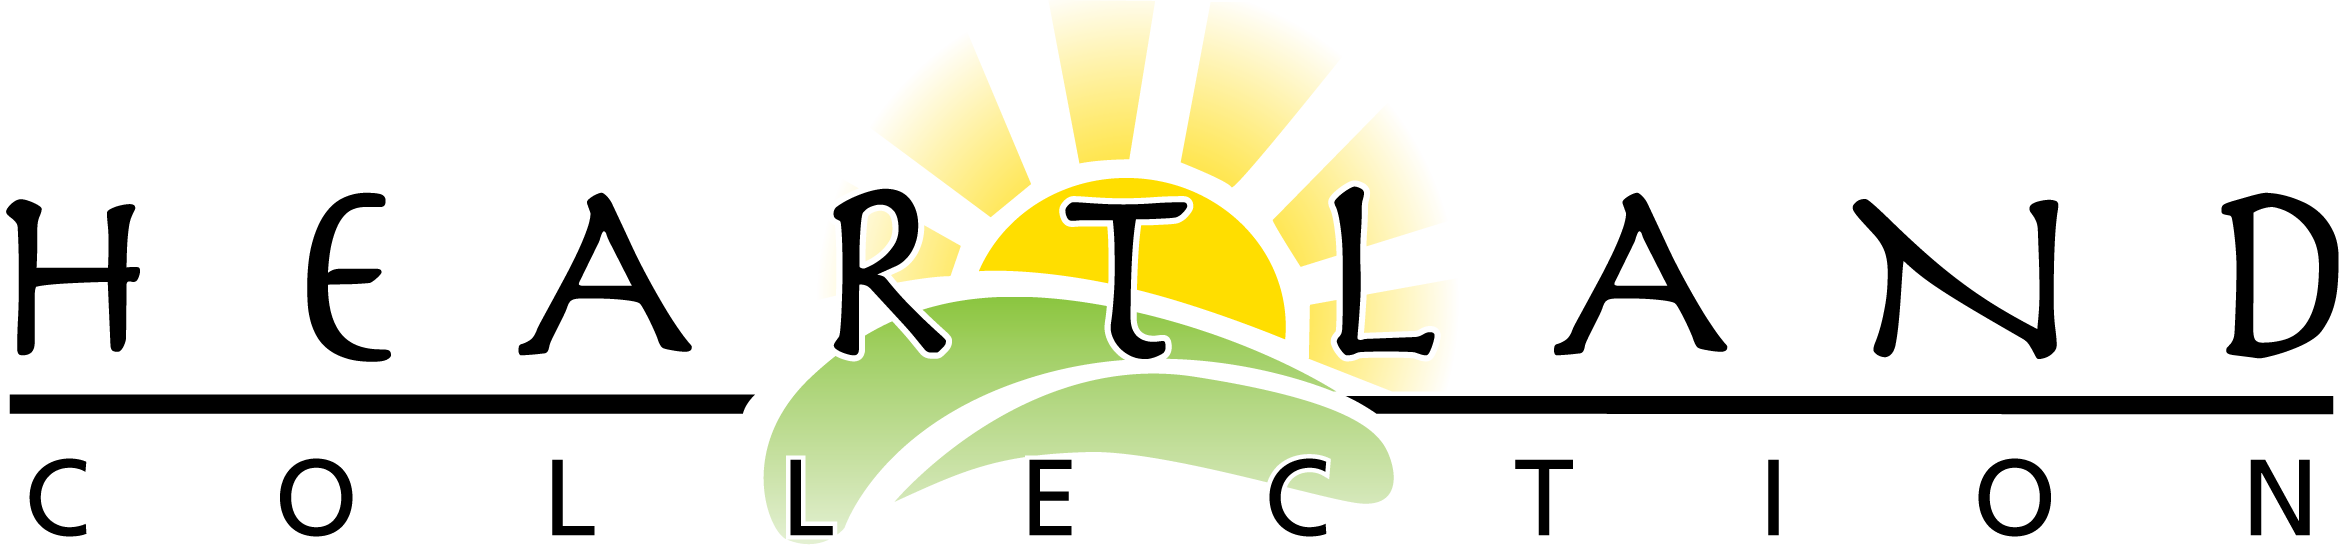 HL_Collection_Logo_20160429-tr-o.png